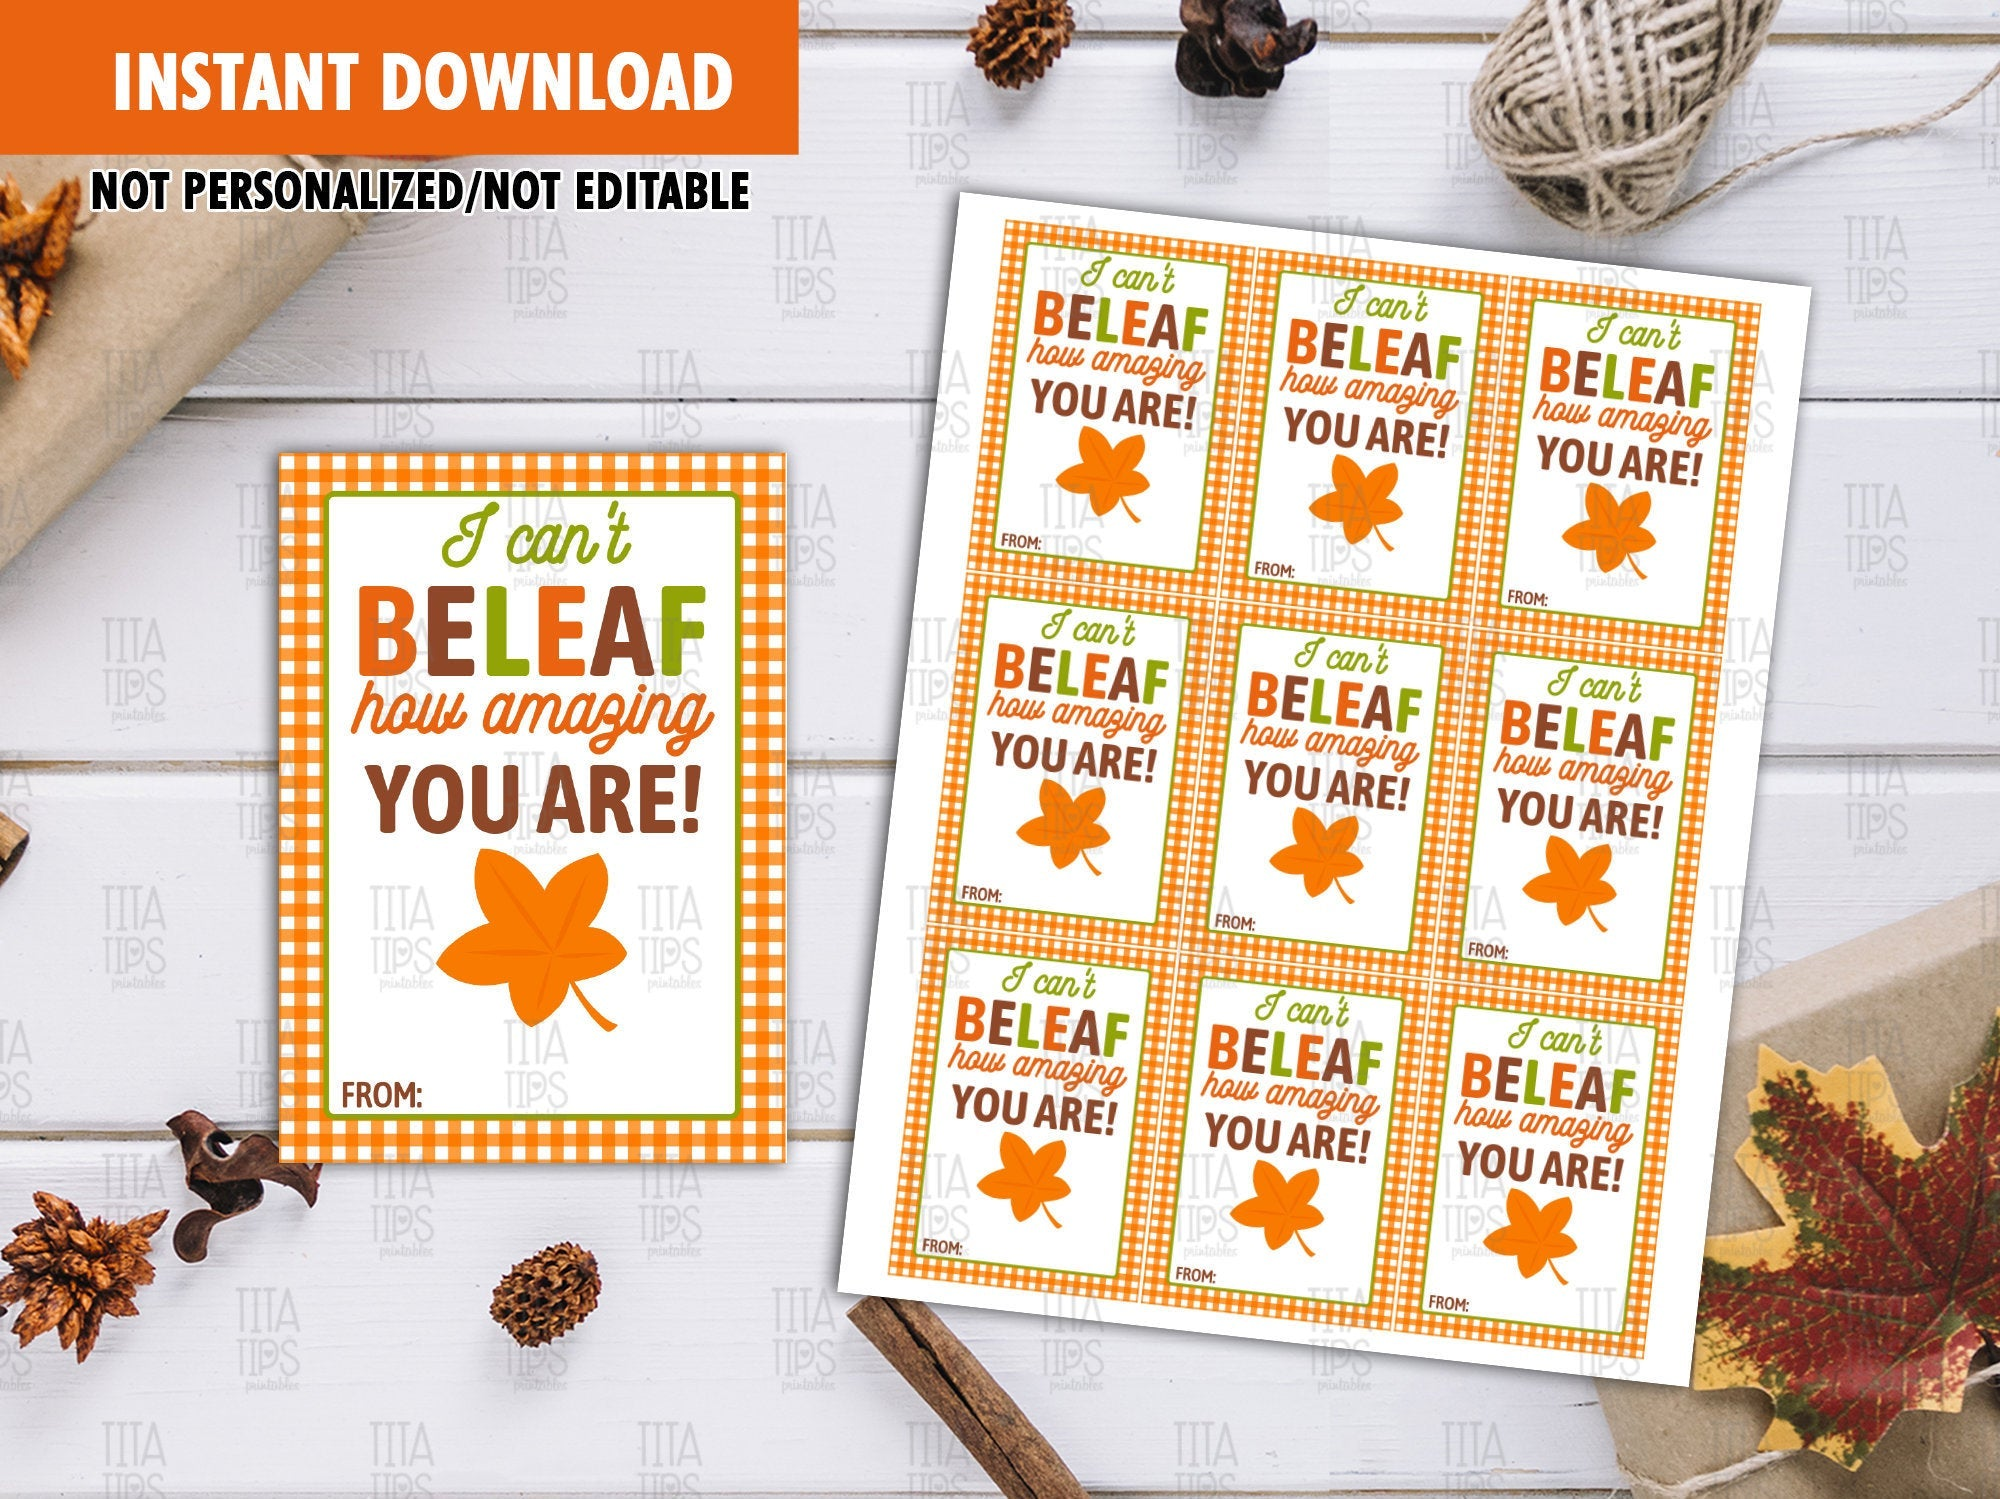 I Can't Beleaf how amazing you are Favor Tags, Autumn Leaves Printable Card, Instant Download - TitaTipsPrintables